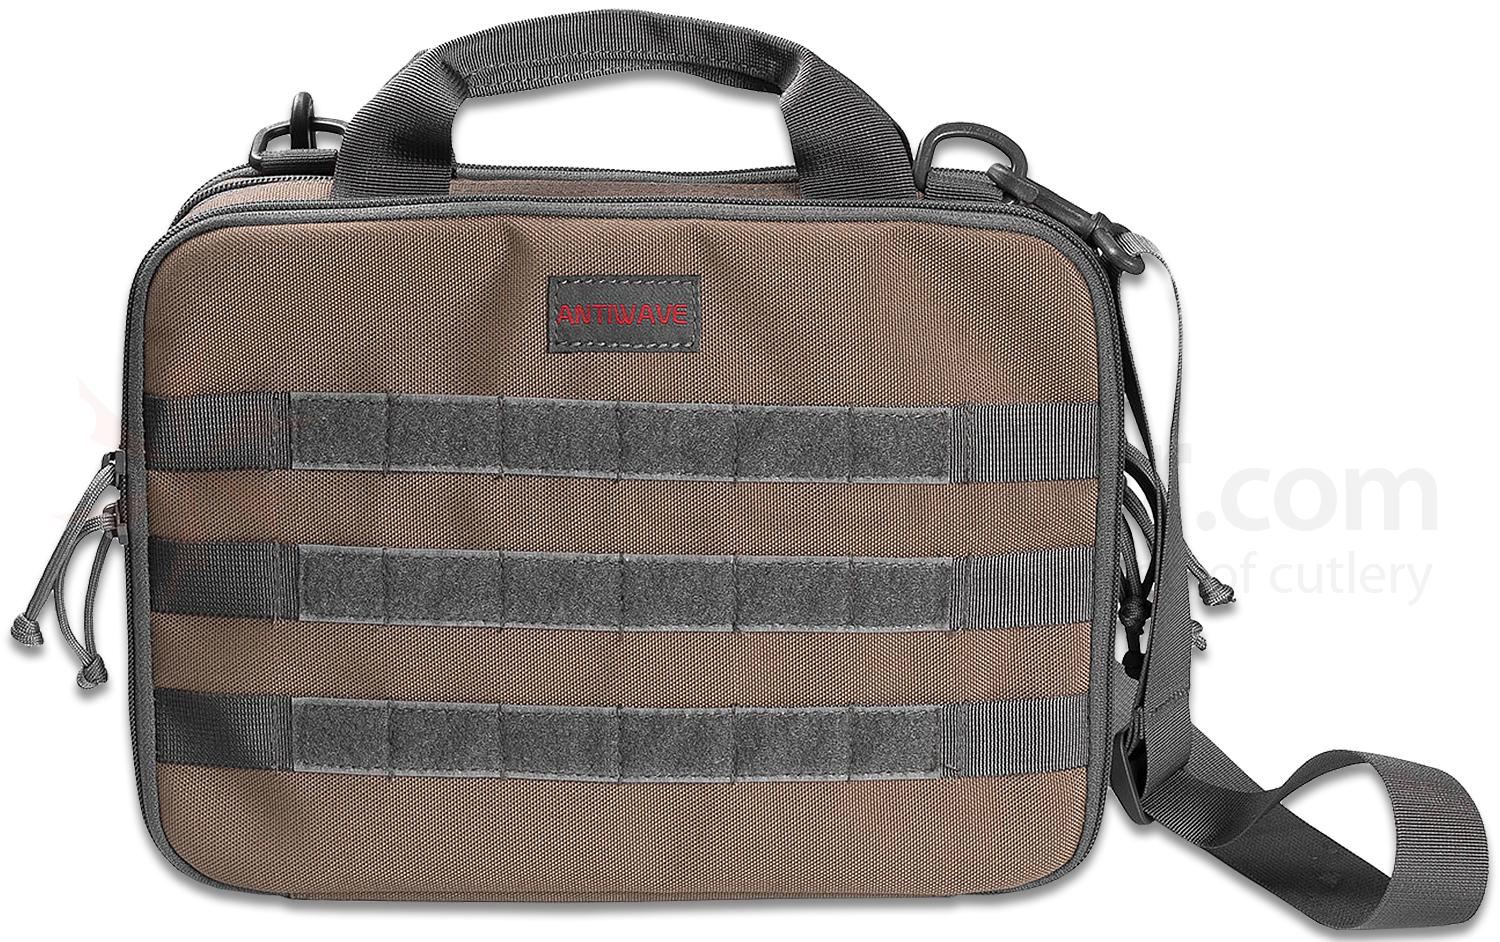 Real Steel Knives Antiwave Chameleon Tactical Gear Bag, Desert Tan